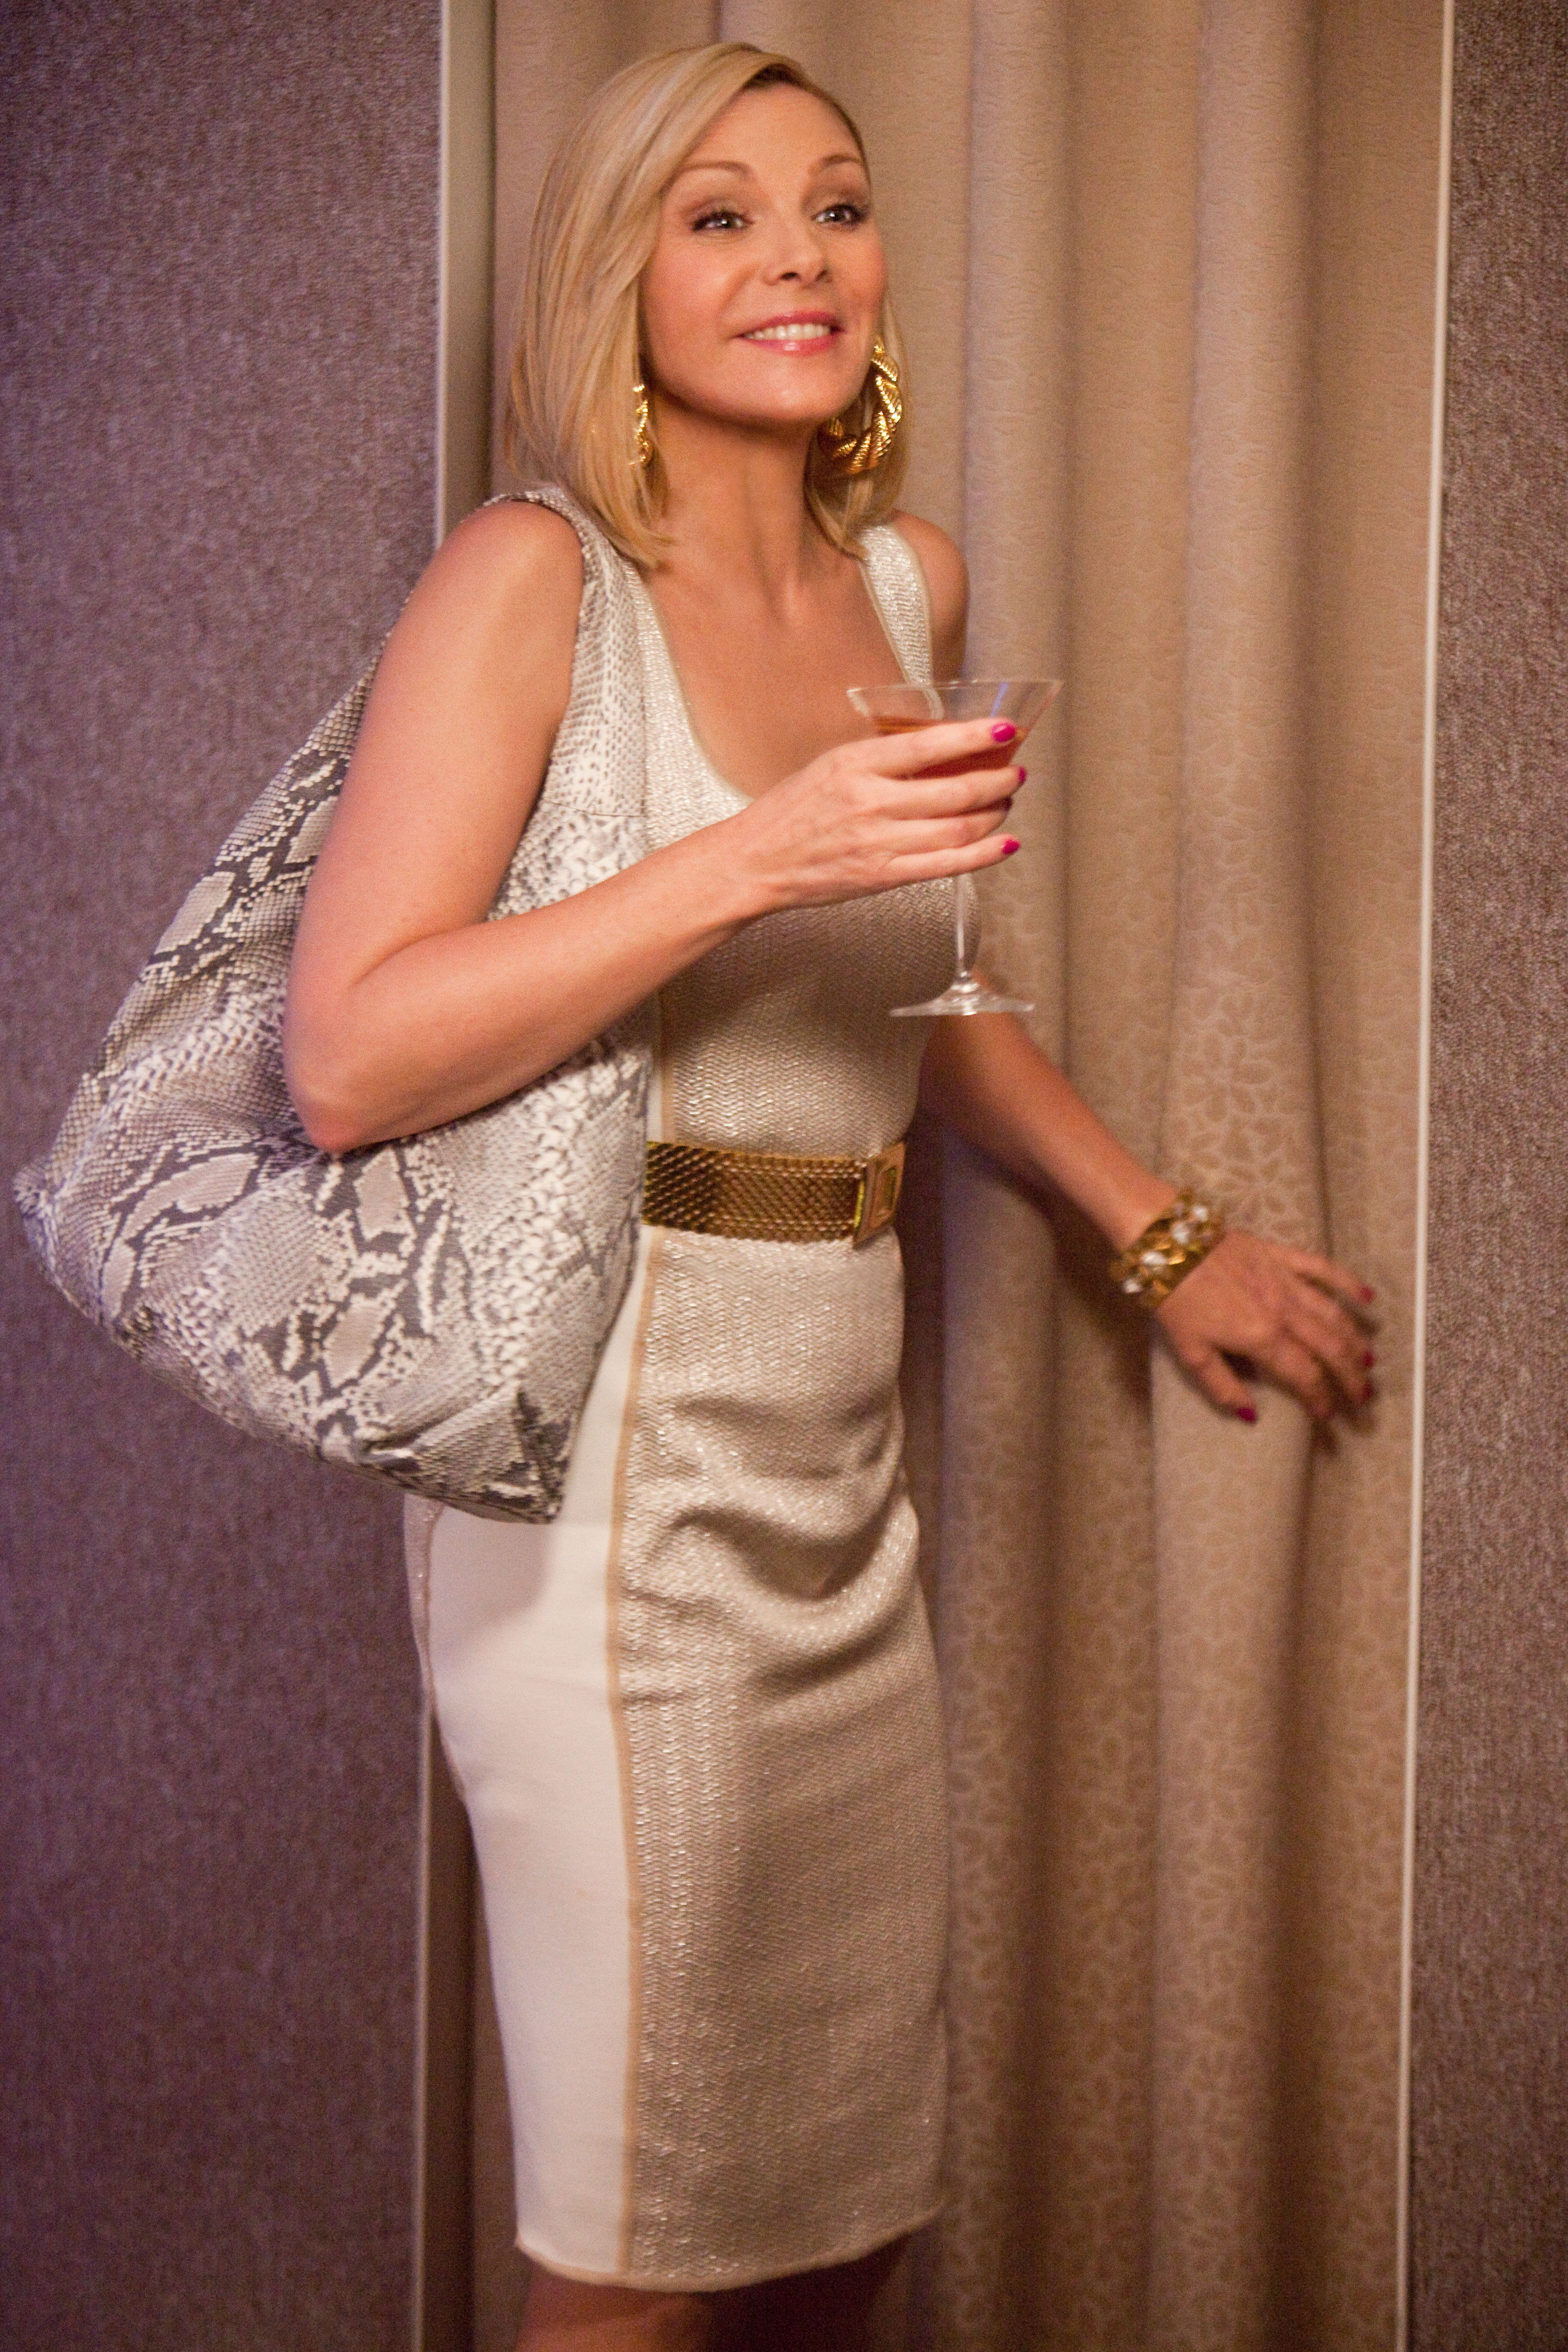 Samantha in a Graeme Black little gold dress, Adriana Castro python bag, and Bill Blass gold belt. I love this outfit. Suits her great! Photos courtesy of Warner Bros.